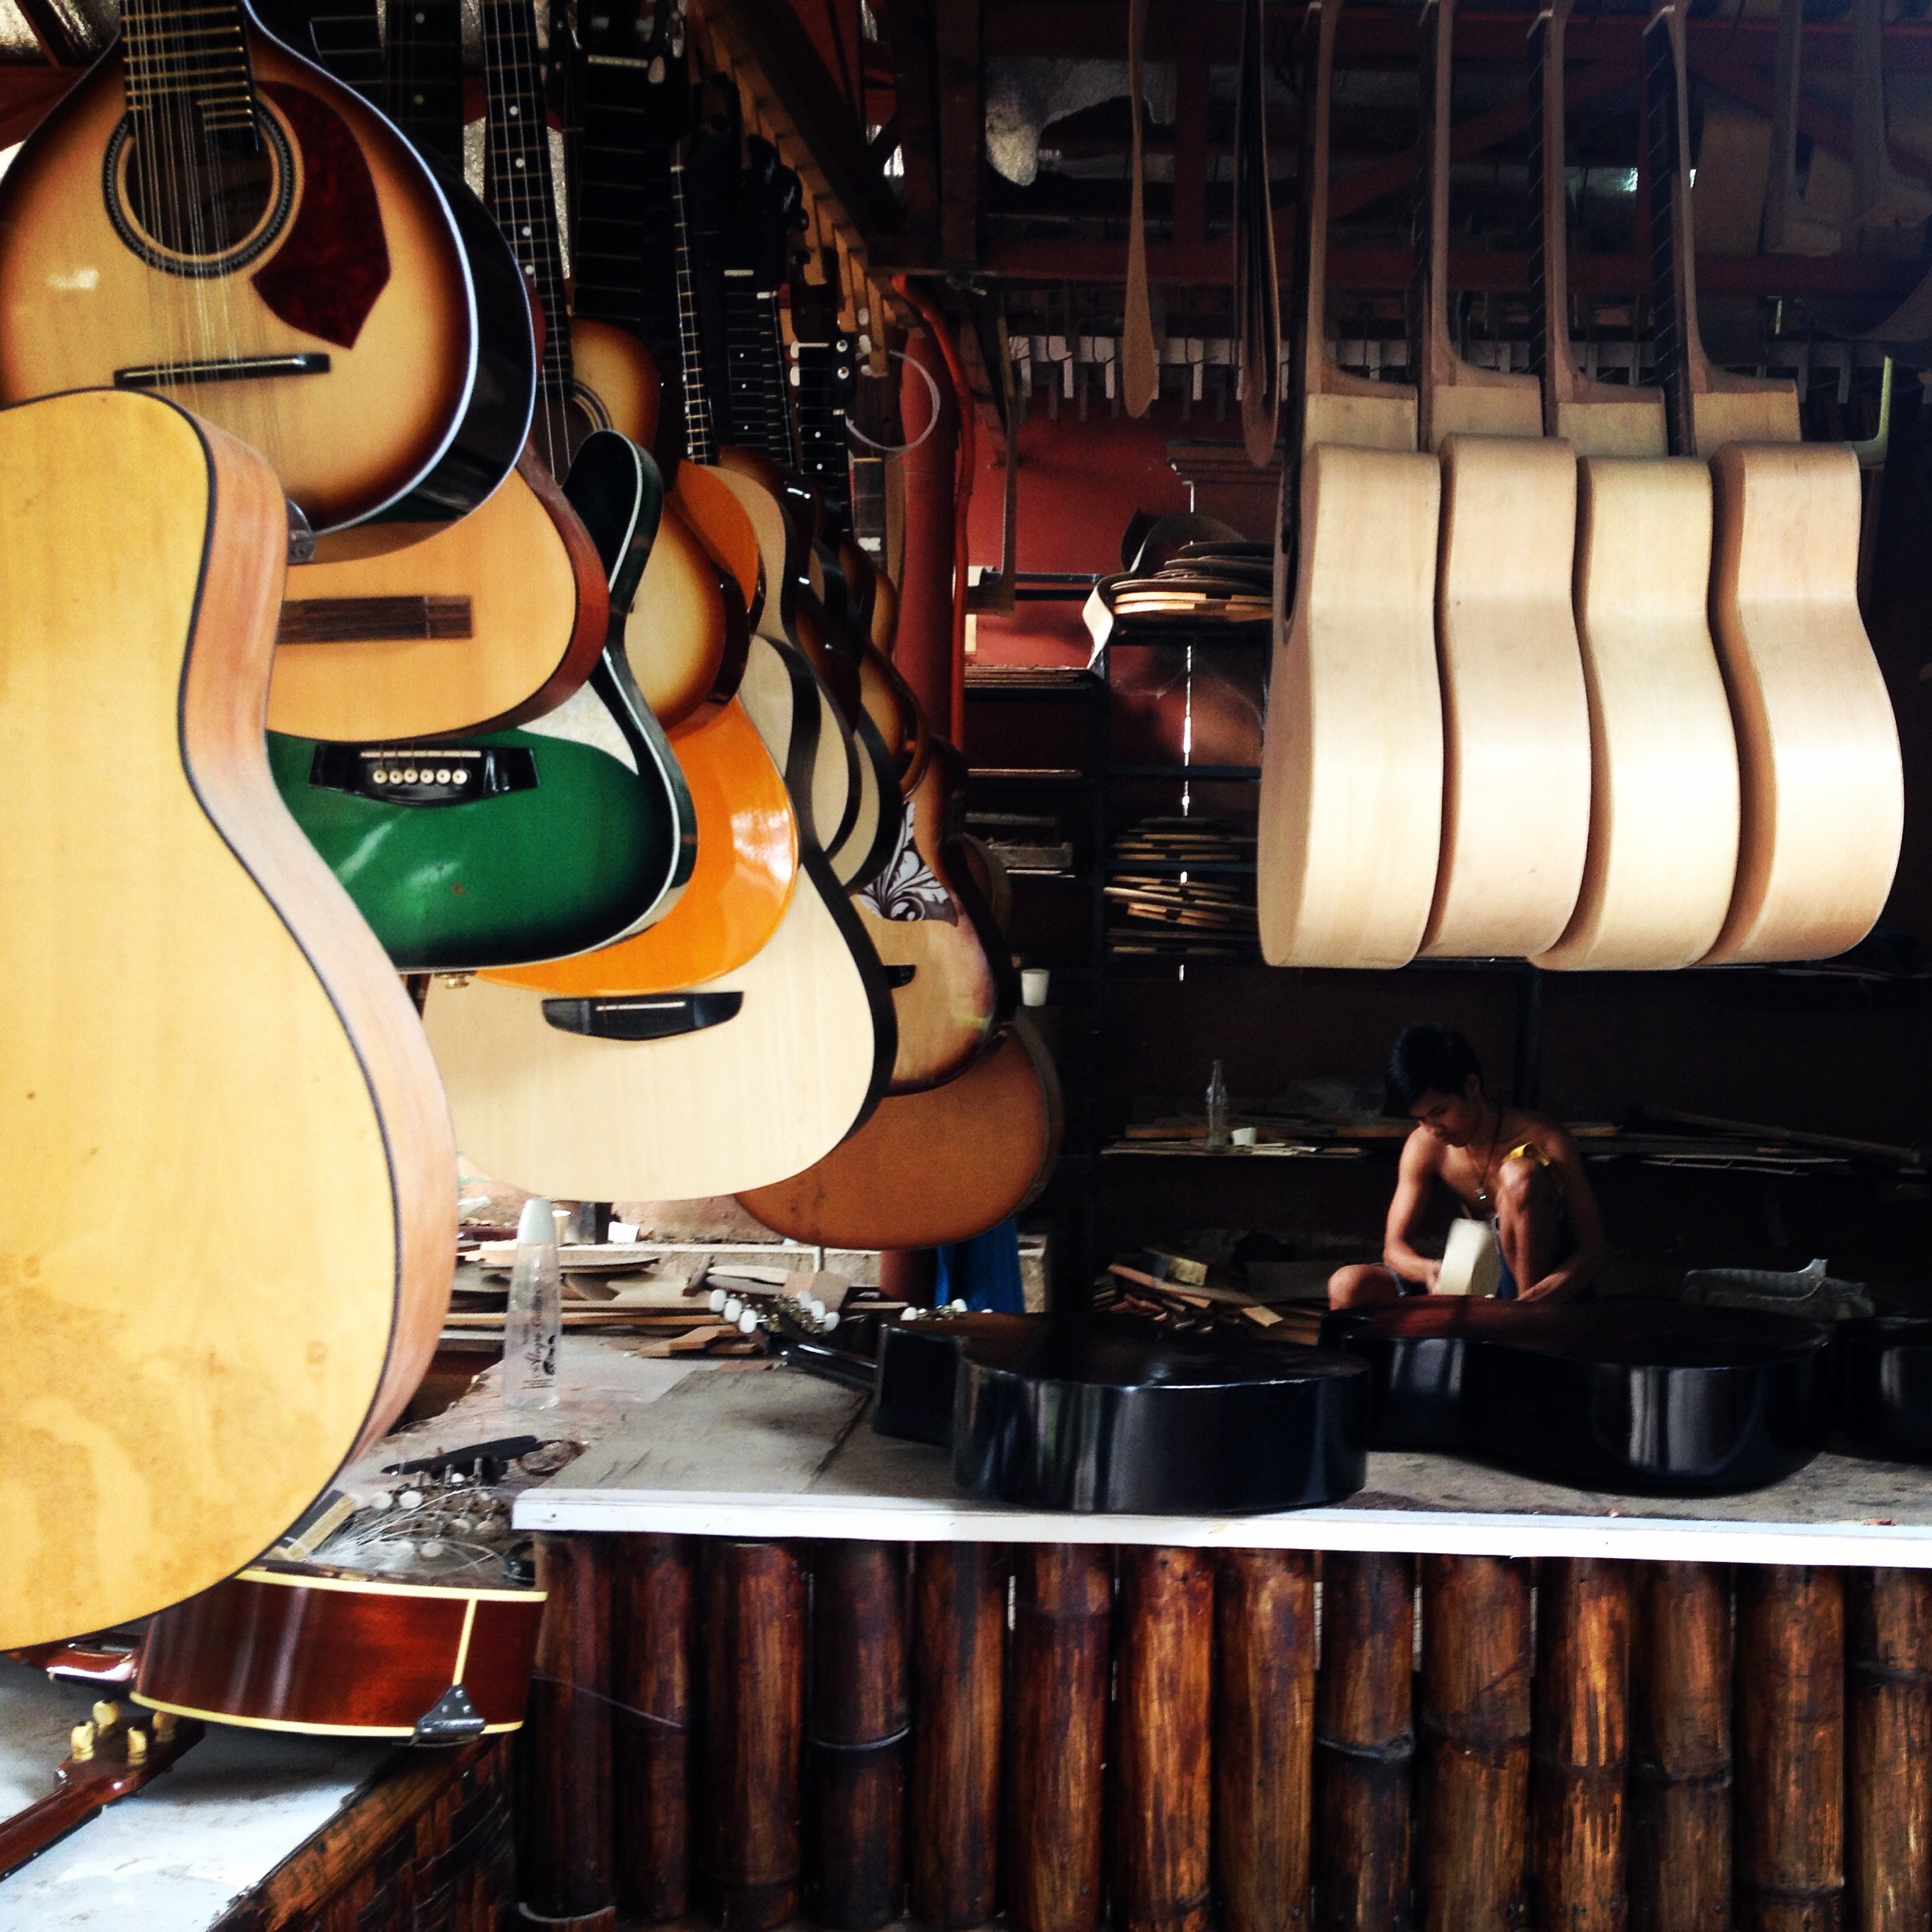 Alegre Guitars, Cebu @oltreilbalcone